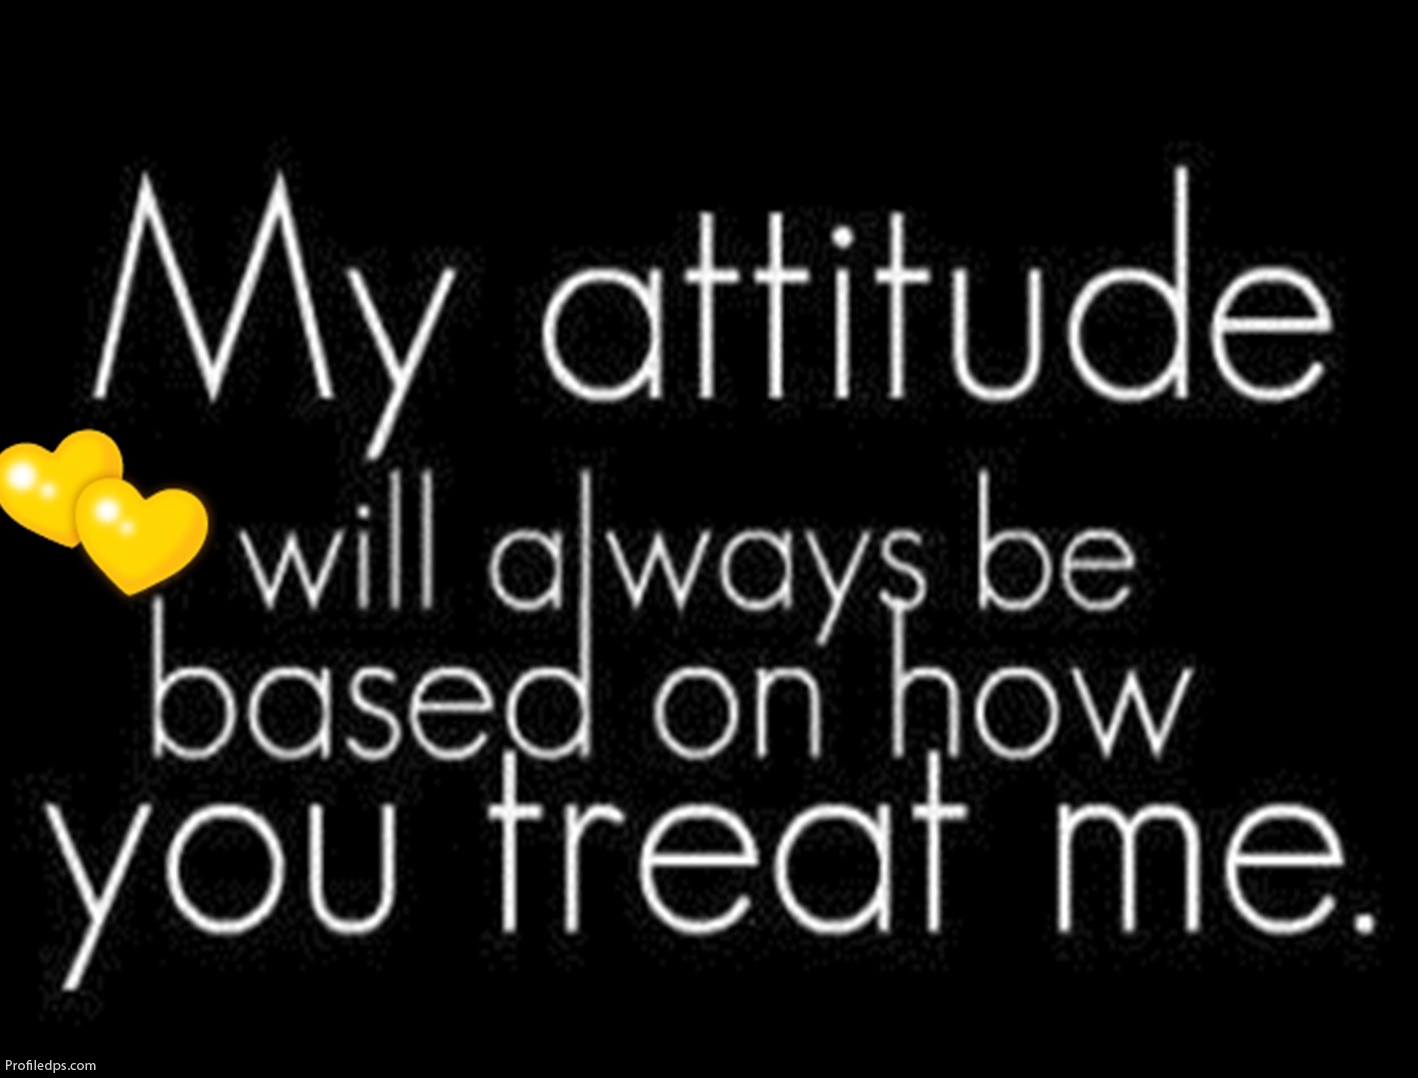 Quotes about giving attitude